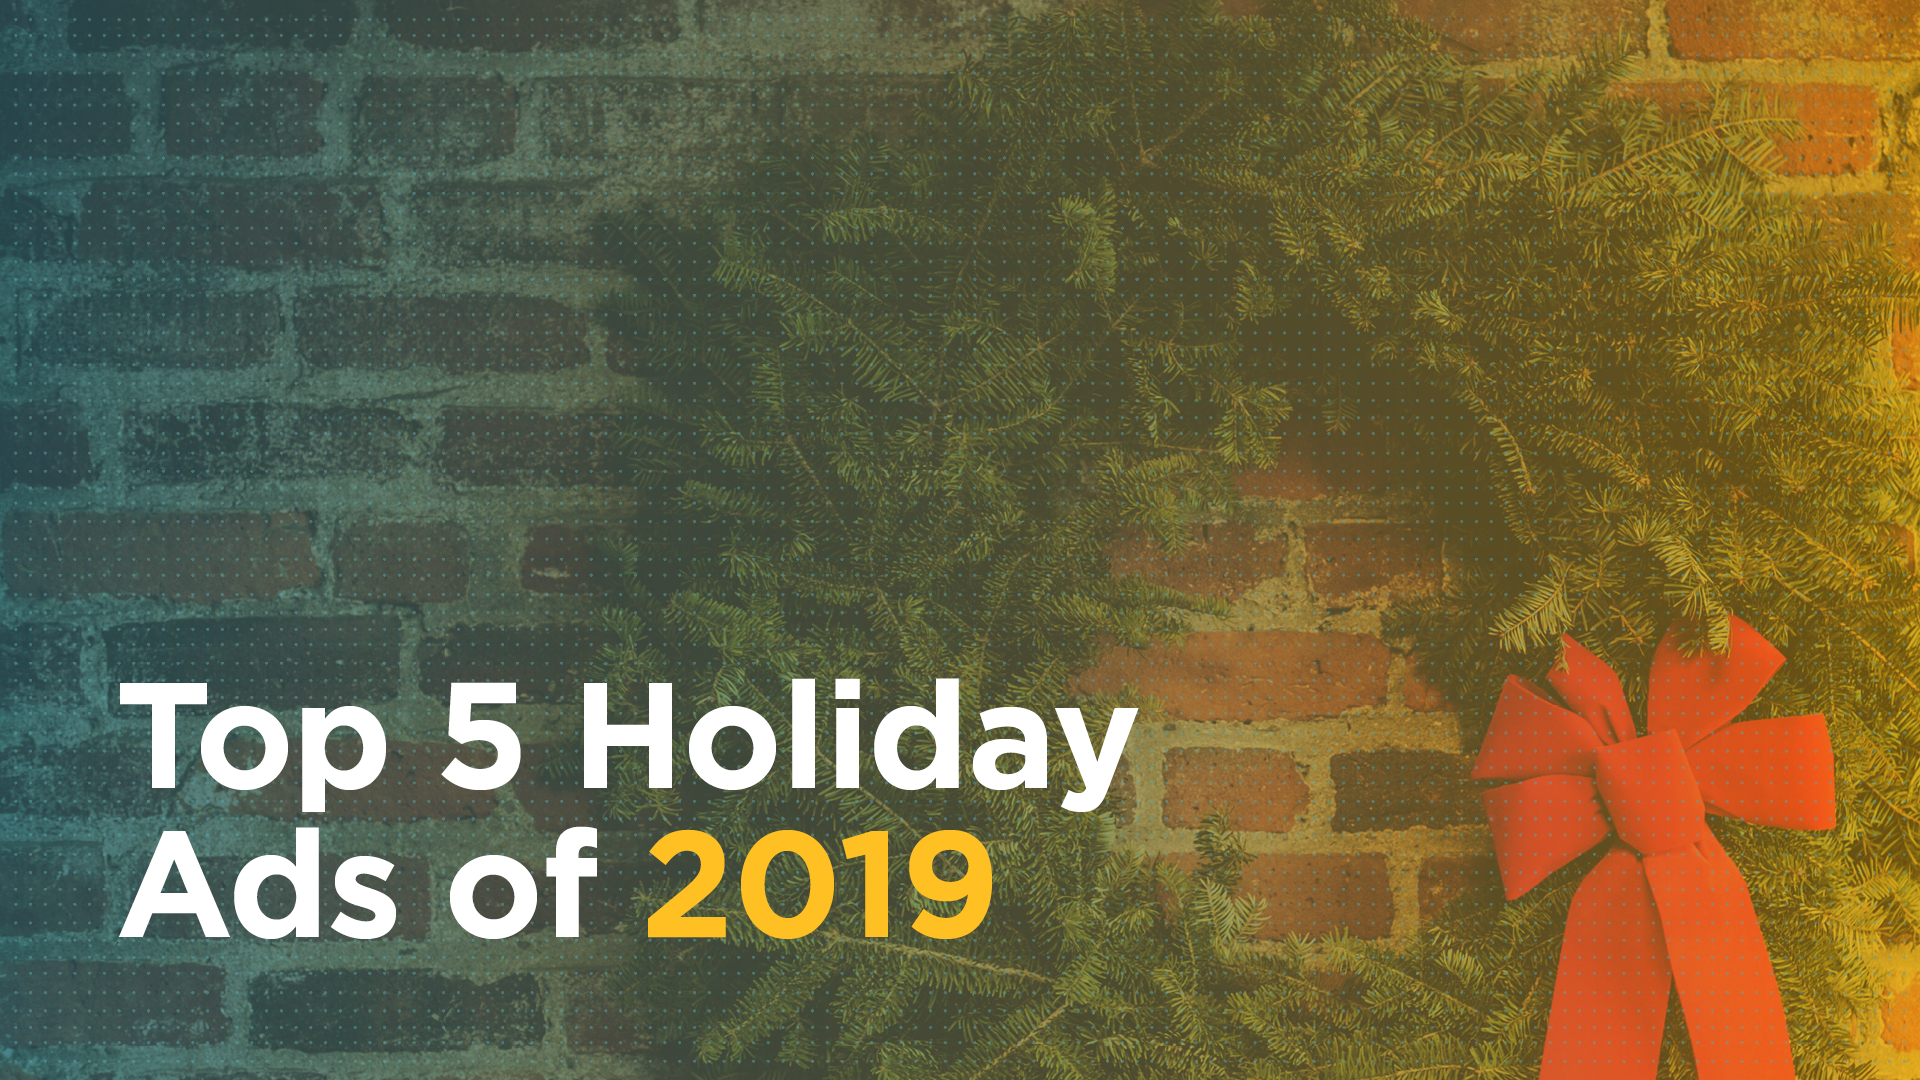 Top 5 Holiday Ads of 2019 Featured Image